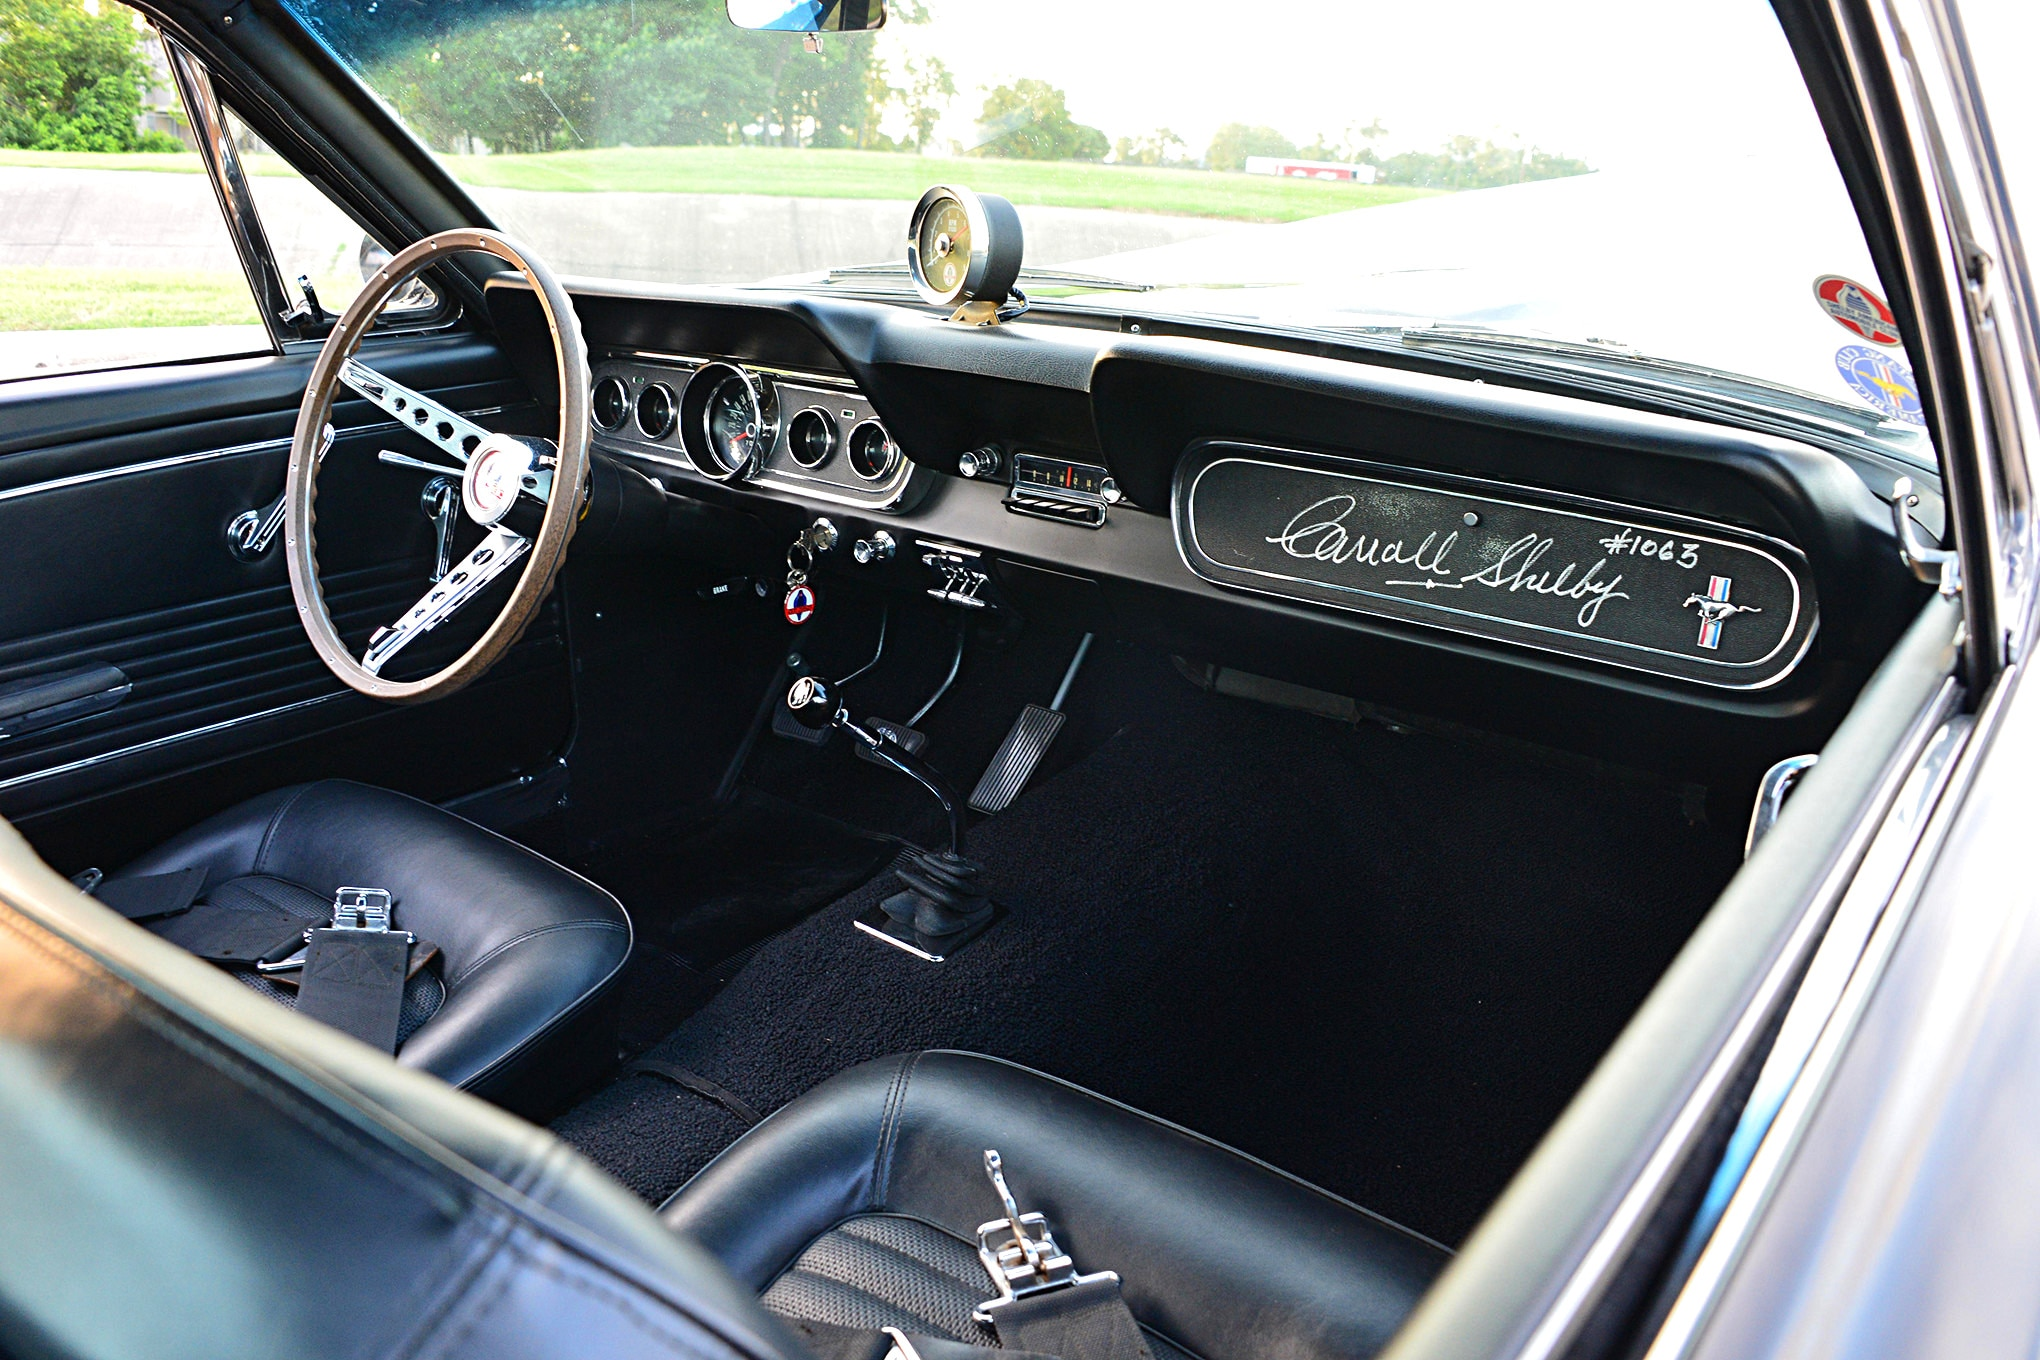 1966 Ford Mustang Gt350 008